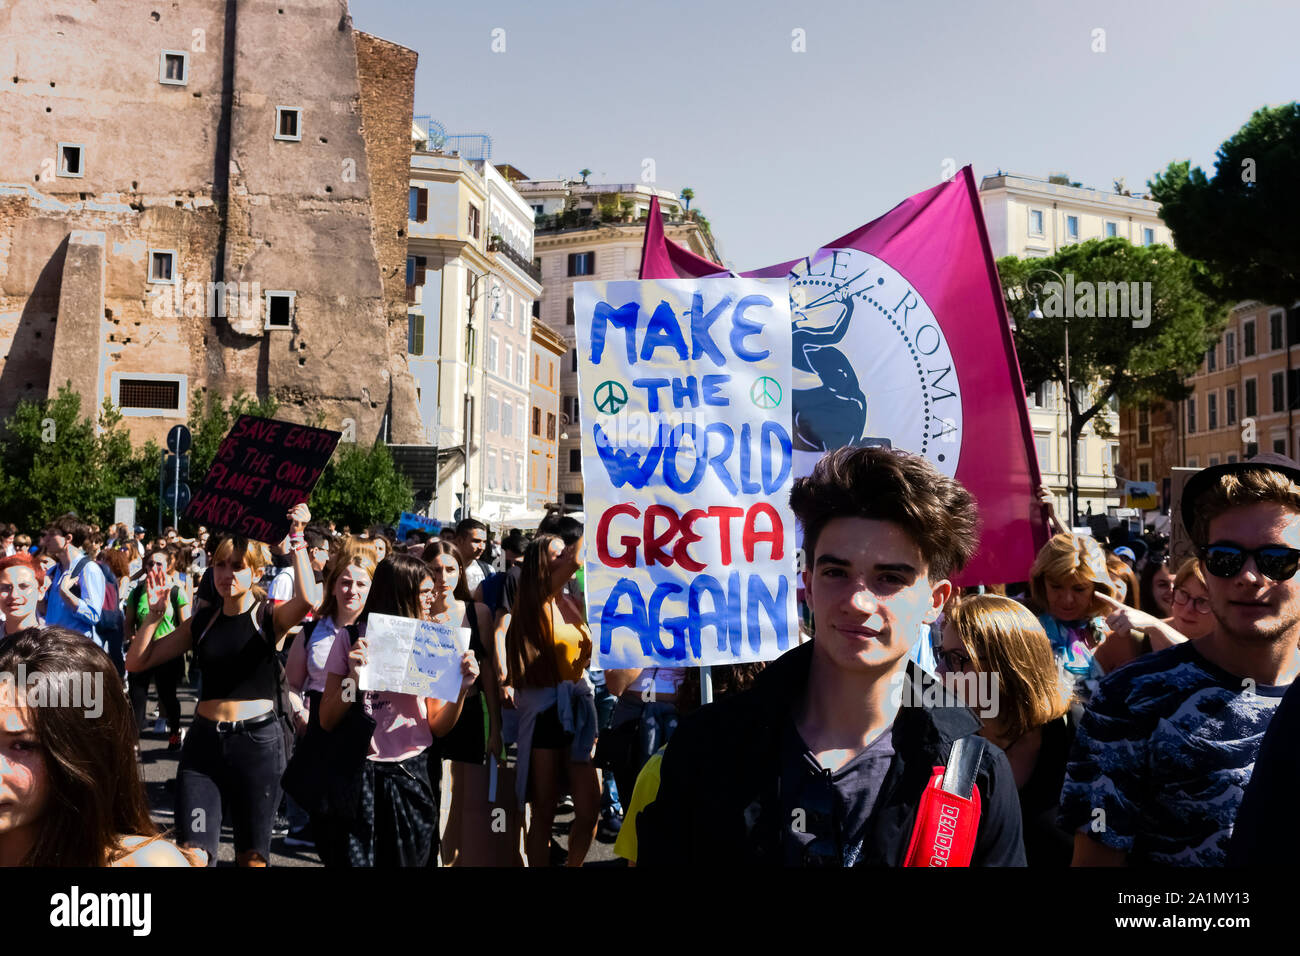 Fridays for future (FFF). Rome third global climate change strike for future. Young students demonstration march protest against climate change. System change not climate change. Students holding up banner sign, took to the streets to demonstrate against global climate change in central Rome, Italy, Europe, European Union. Every Friday skrike. 27th september 2019 Stock Photo